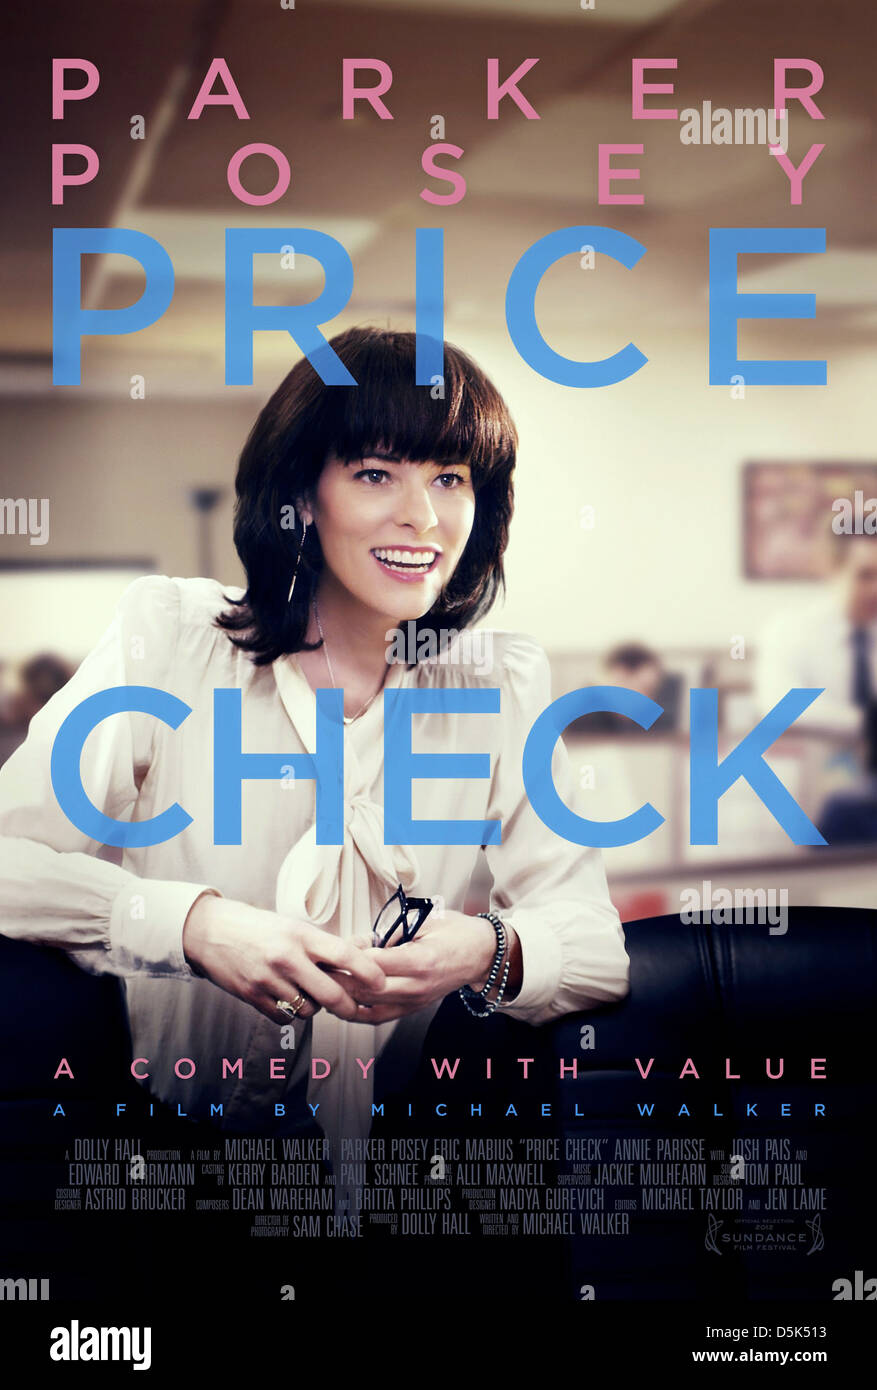 PARKER POSEY POSTER PRICE CHECK (2012) Stock Photo